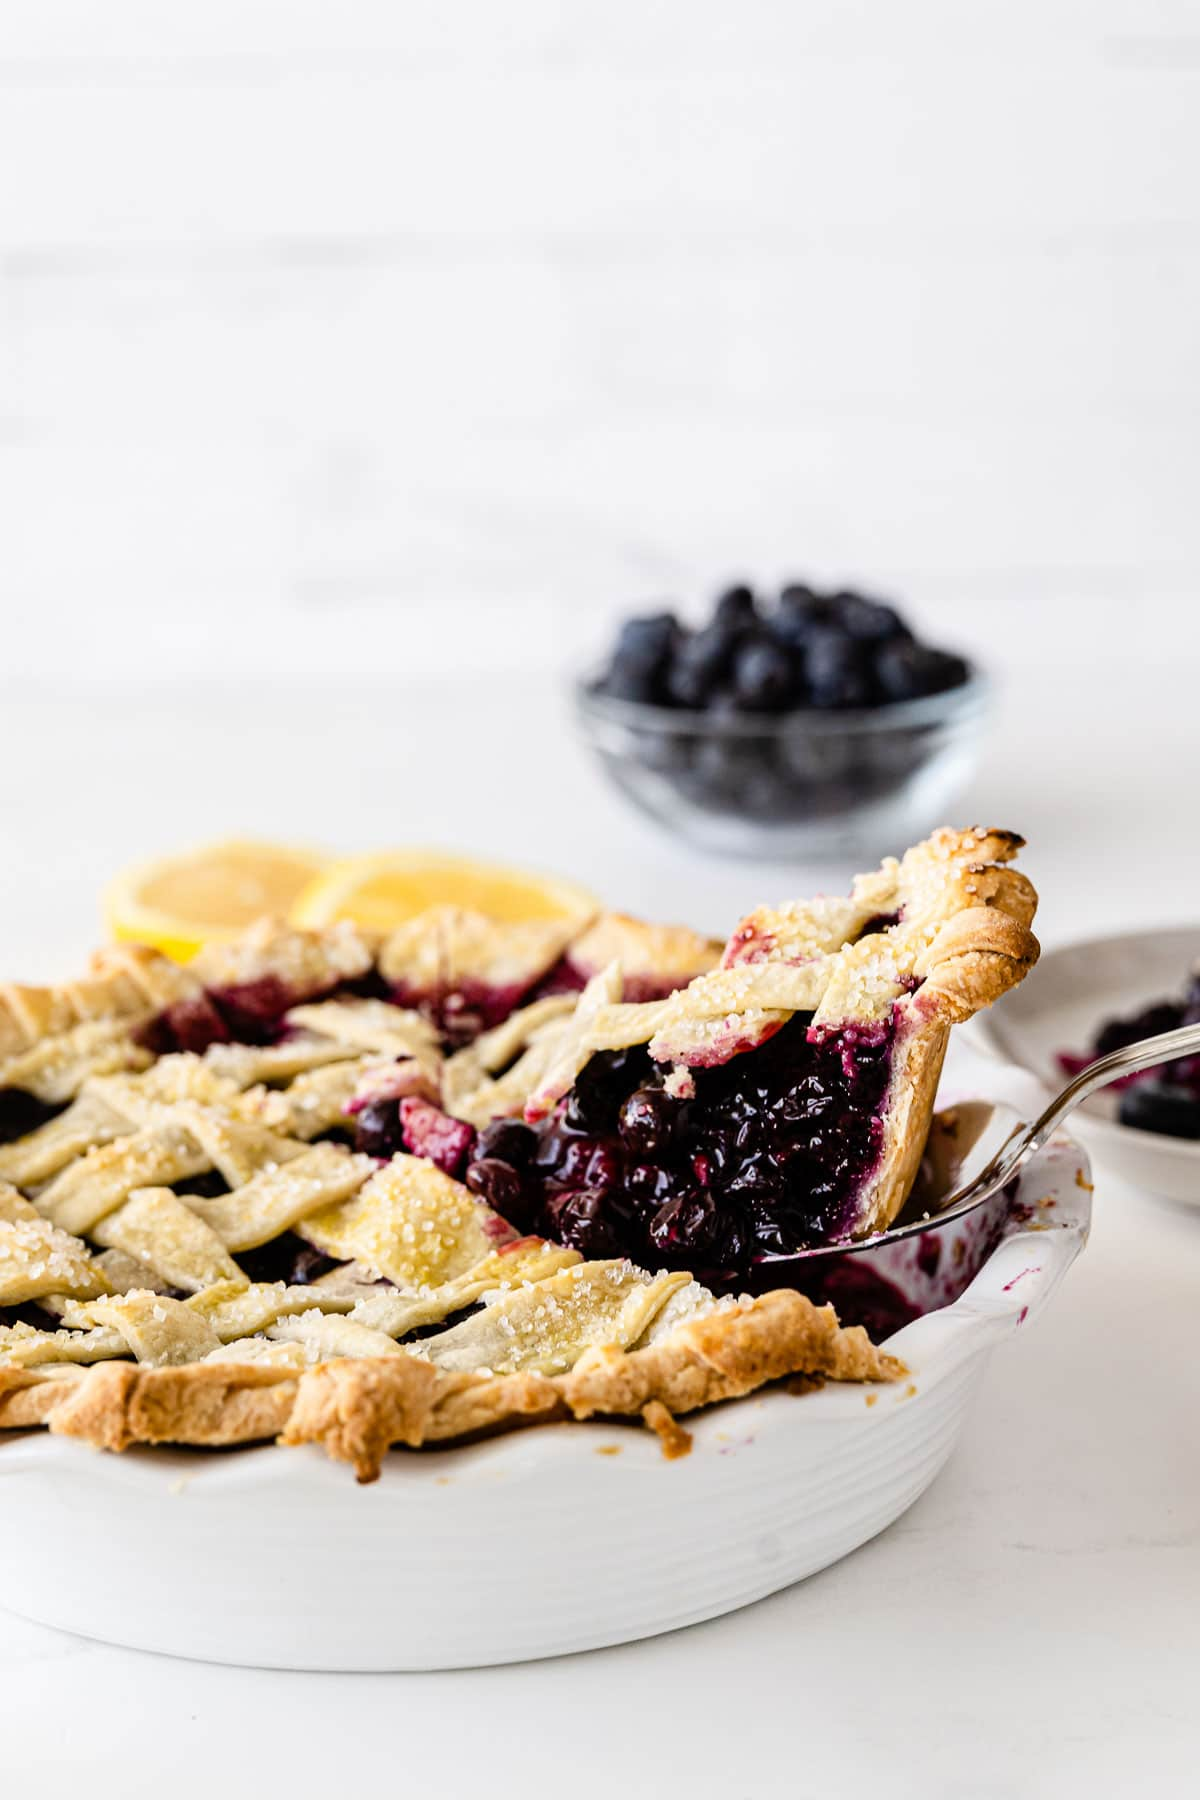 a slice of blueberry pie being taking out of a white pie plate